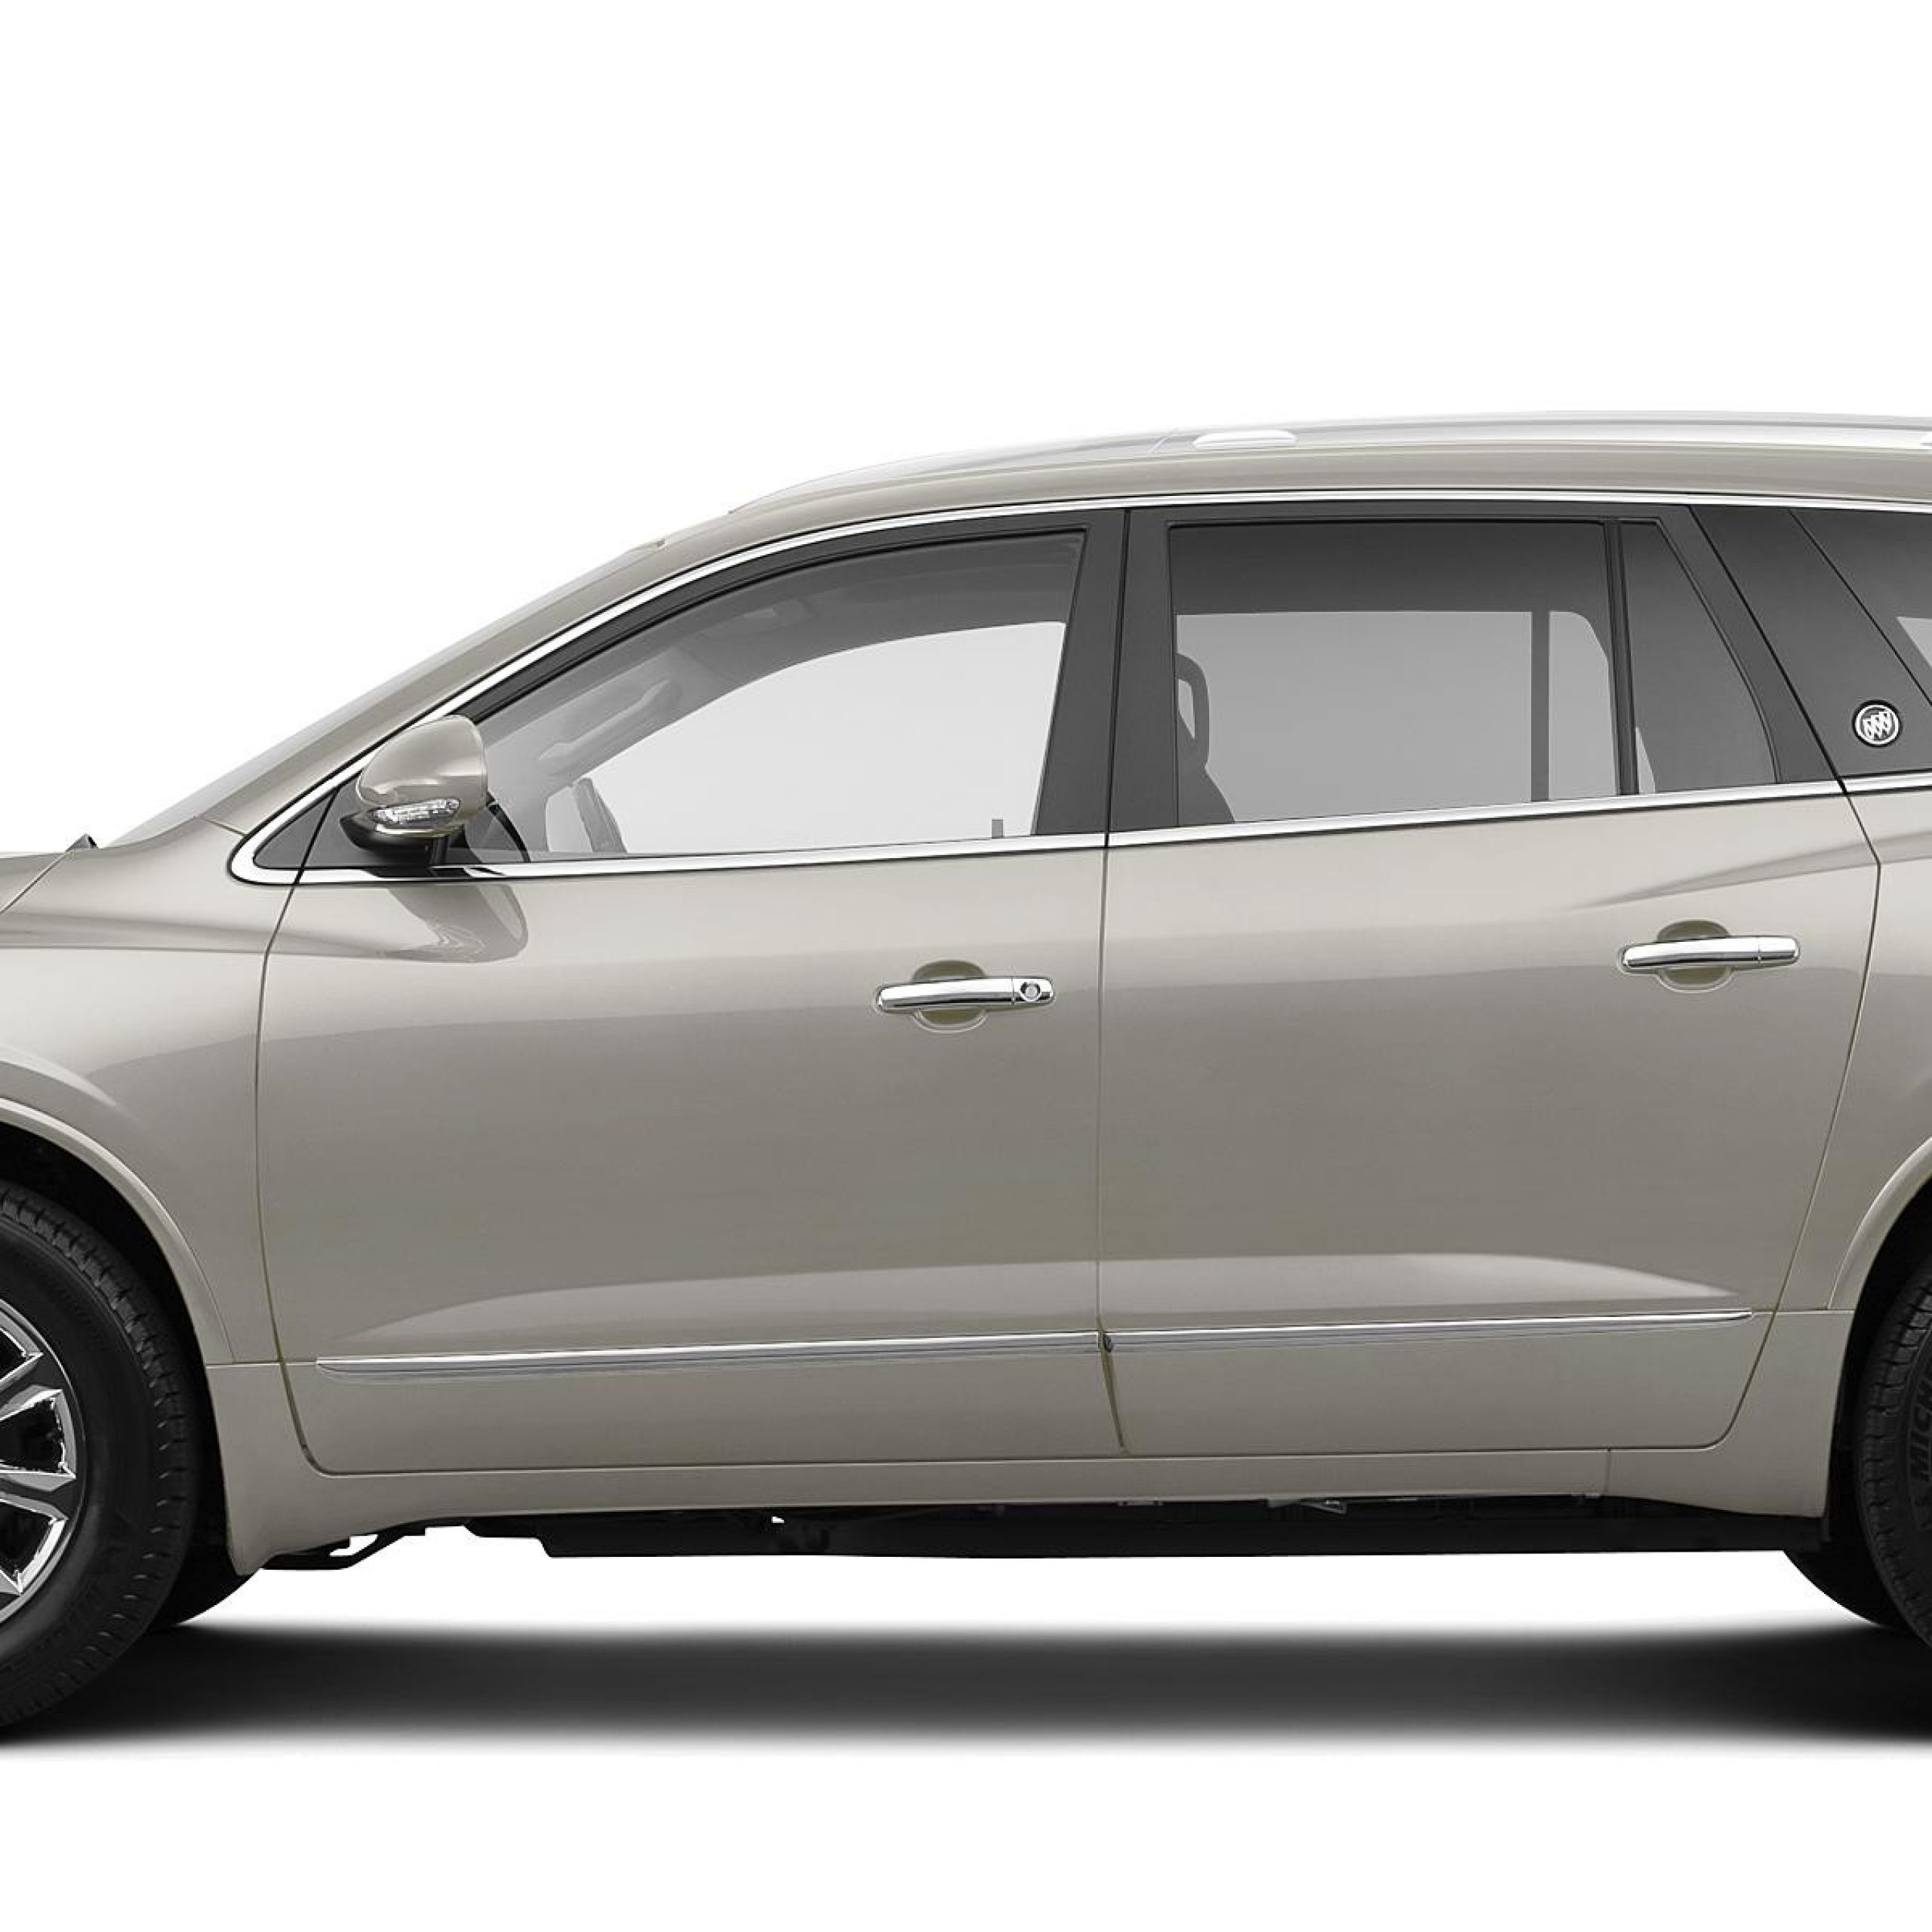 2011 Buick Enclave Lovely 2014 Buick Enclave Leather 4dr Crossover Research Groovecar